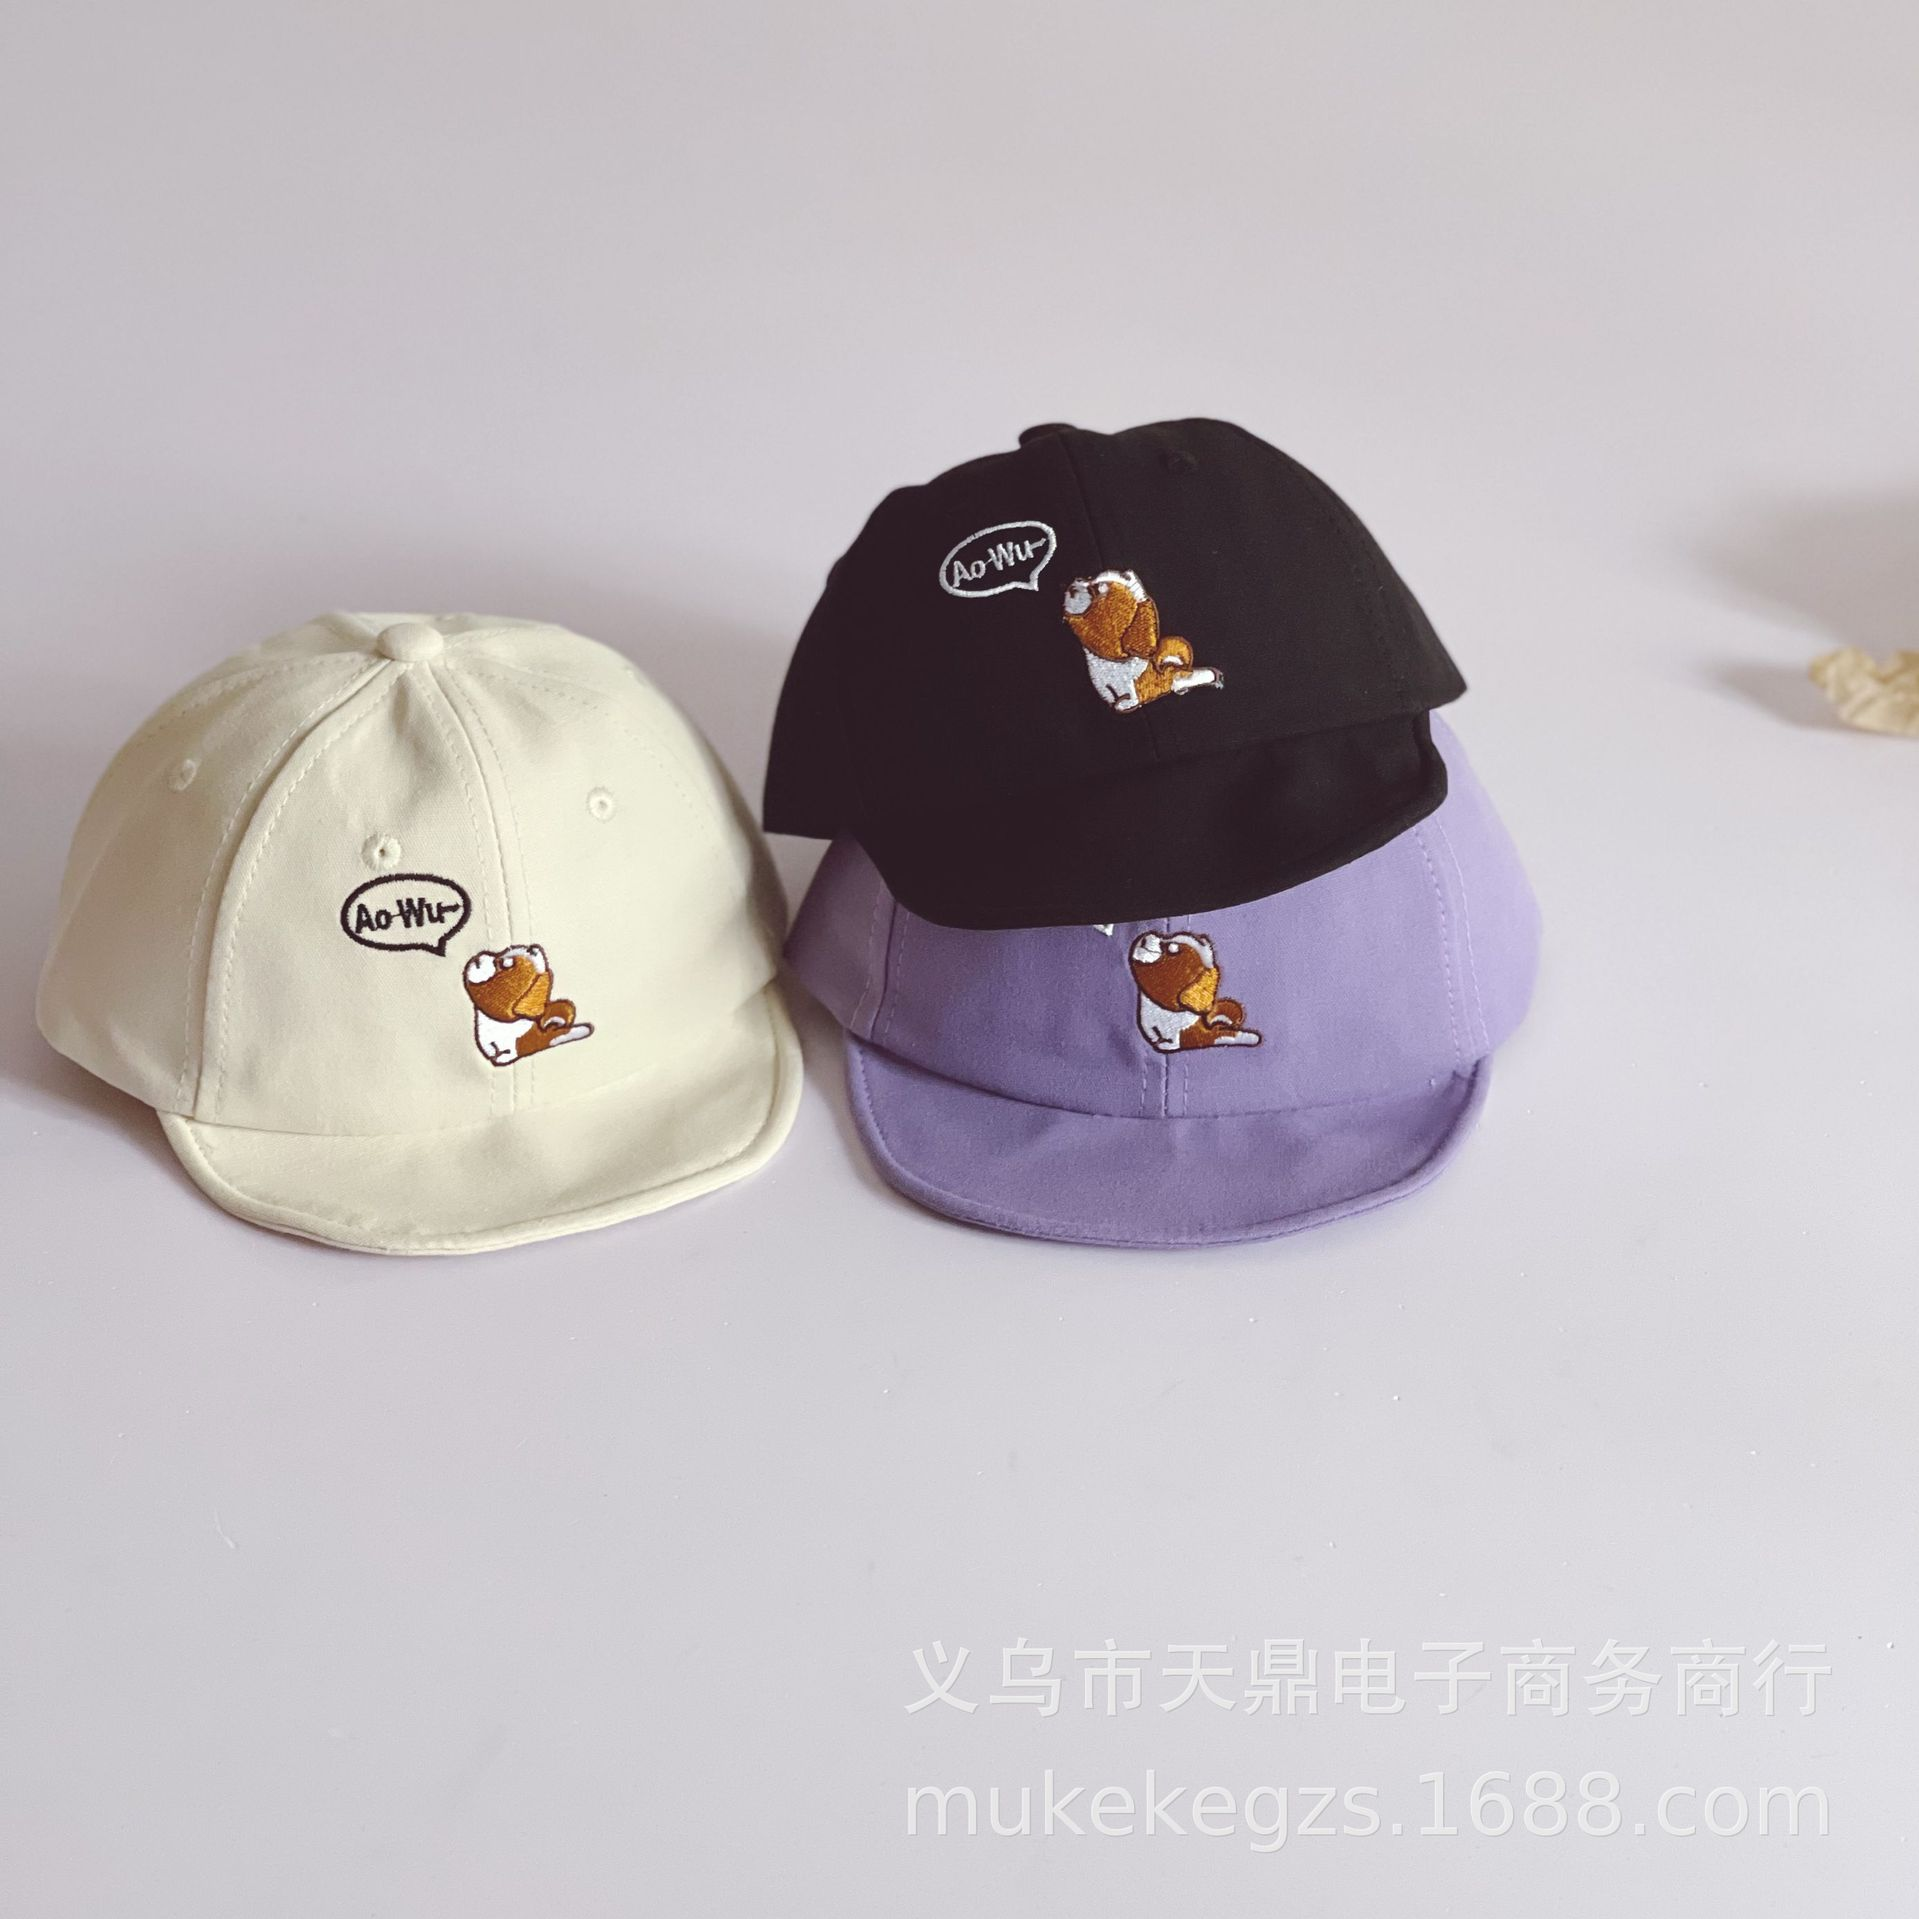 Classic Baseball Cap with Minimal Prints for Bringing your Kids to the Park